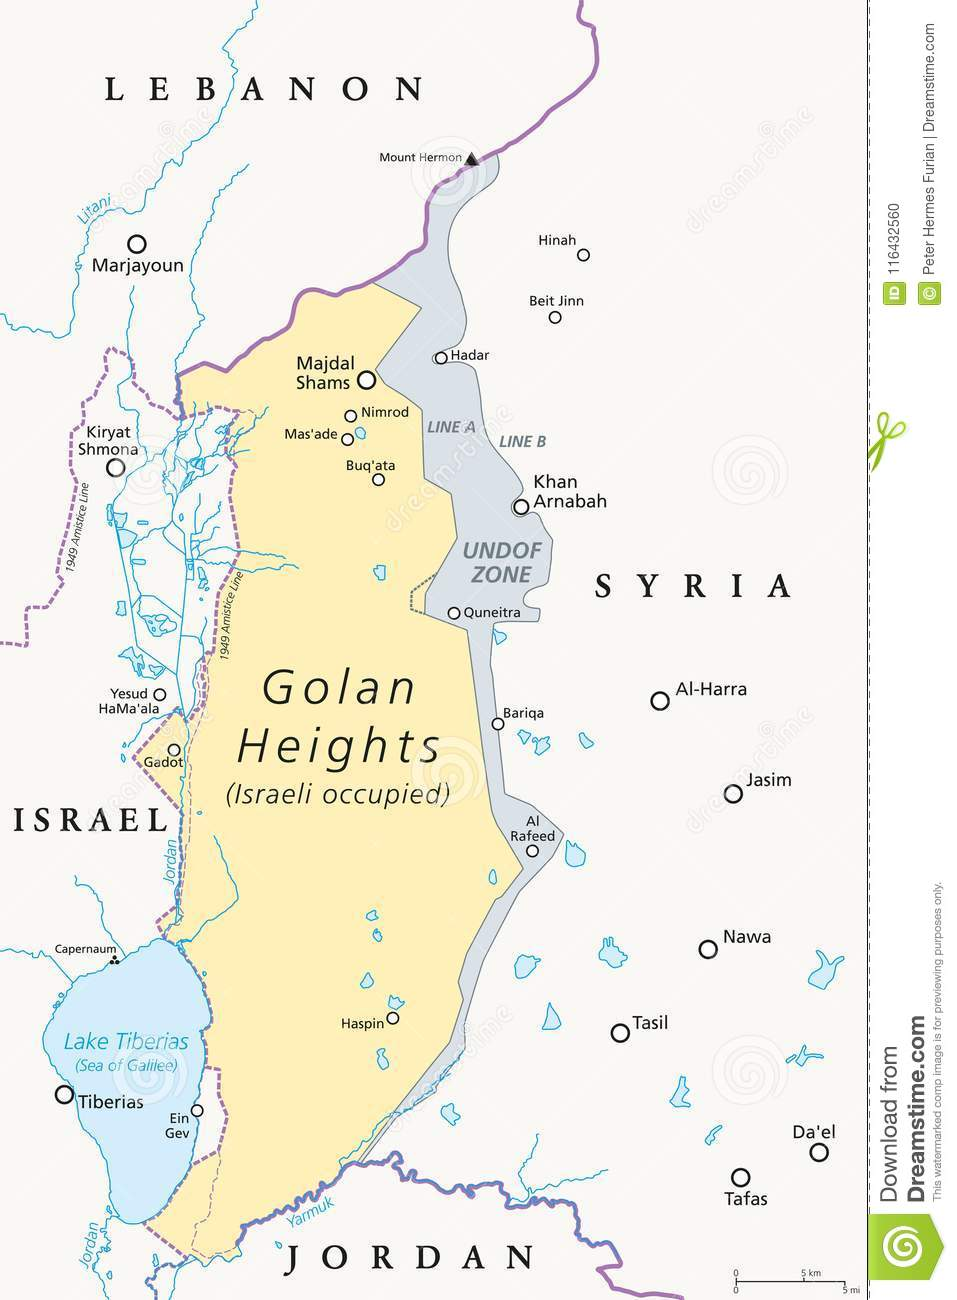 Golan Heights Political Map Stock Vector - Illustration of ... on aleppo map, sinai peninsula map, purple line, sinai peninsula, yom kippur war, gaza strip, syria map, haifa map, mount hermon map, gaza map, red sea map, jordan map, six-day war, arabian sea map, zagros mountains map, israel map, negev desert map, dead sea map, east jerusalem, sea of galilee, palestinian territories, tel aviv, strait of hormuz map, dead sea, west bank, jordan river, suez canal map, yitzhak rabin, kurdistan map, jerusalem map, mesopotamia map, west bank map, tel aviv map, mount hermon,